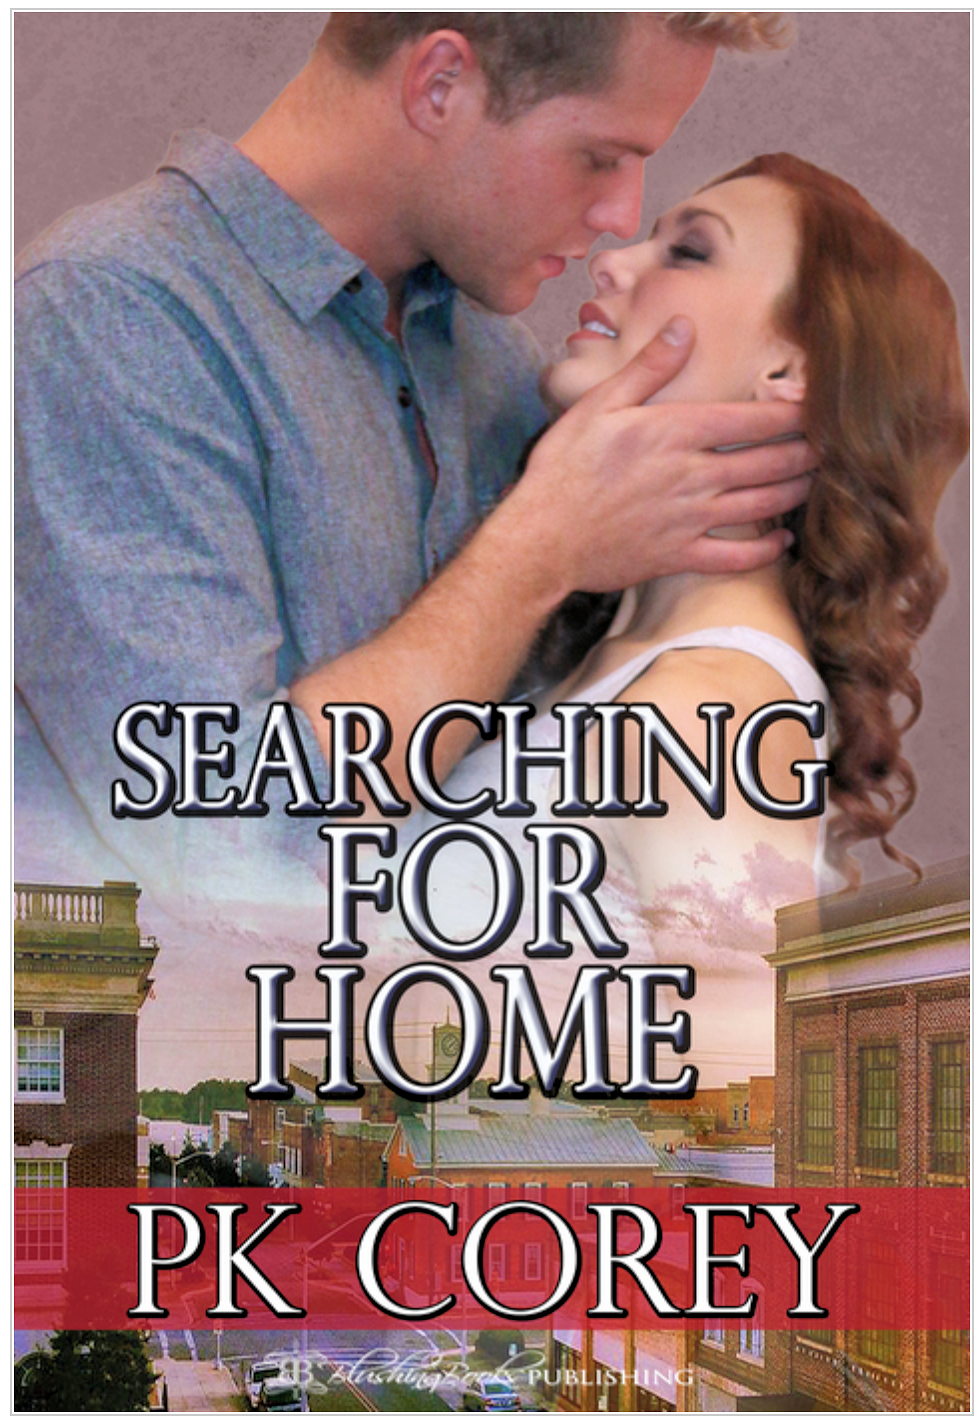 Searching for Home - PK Screen Shot 2019-09-04-rev.png